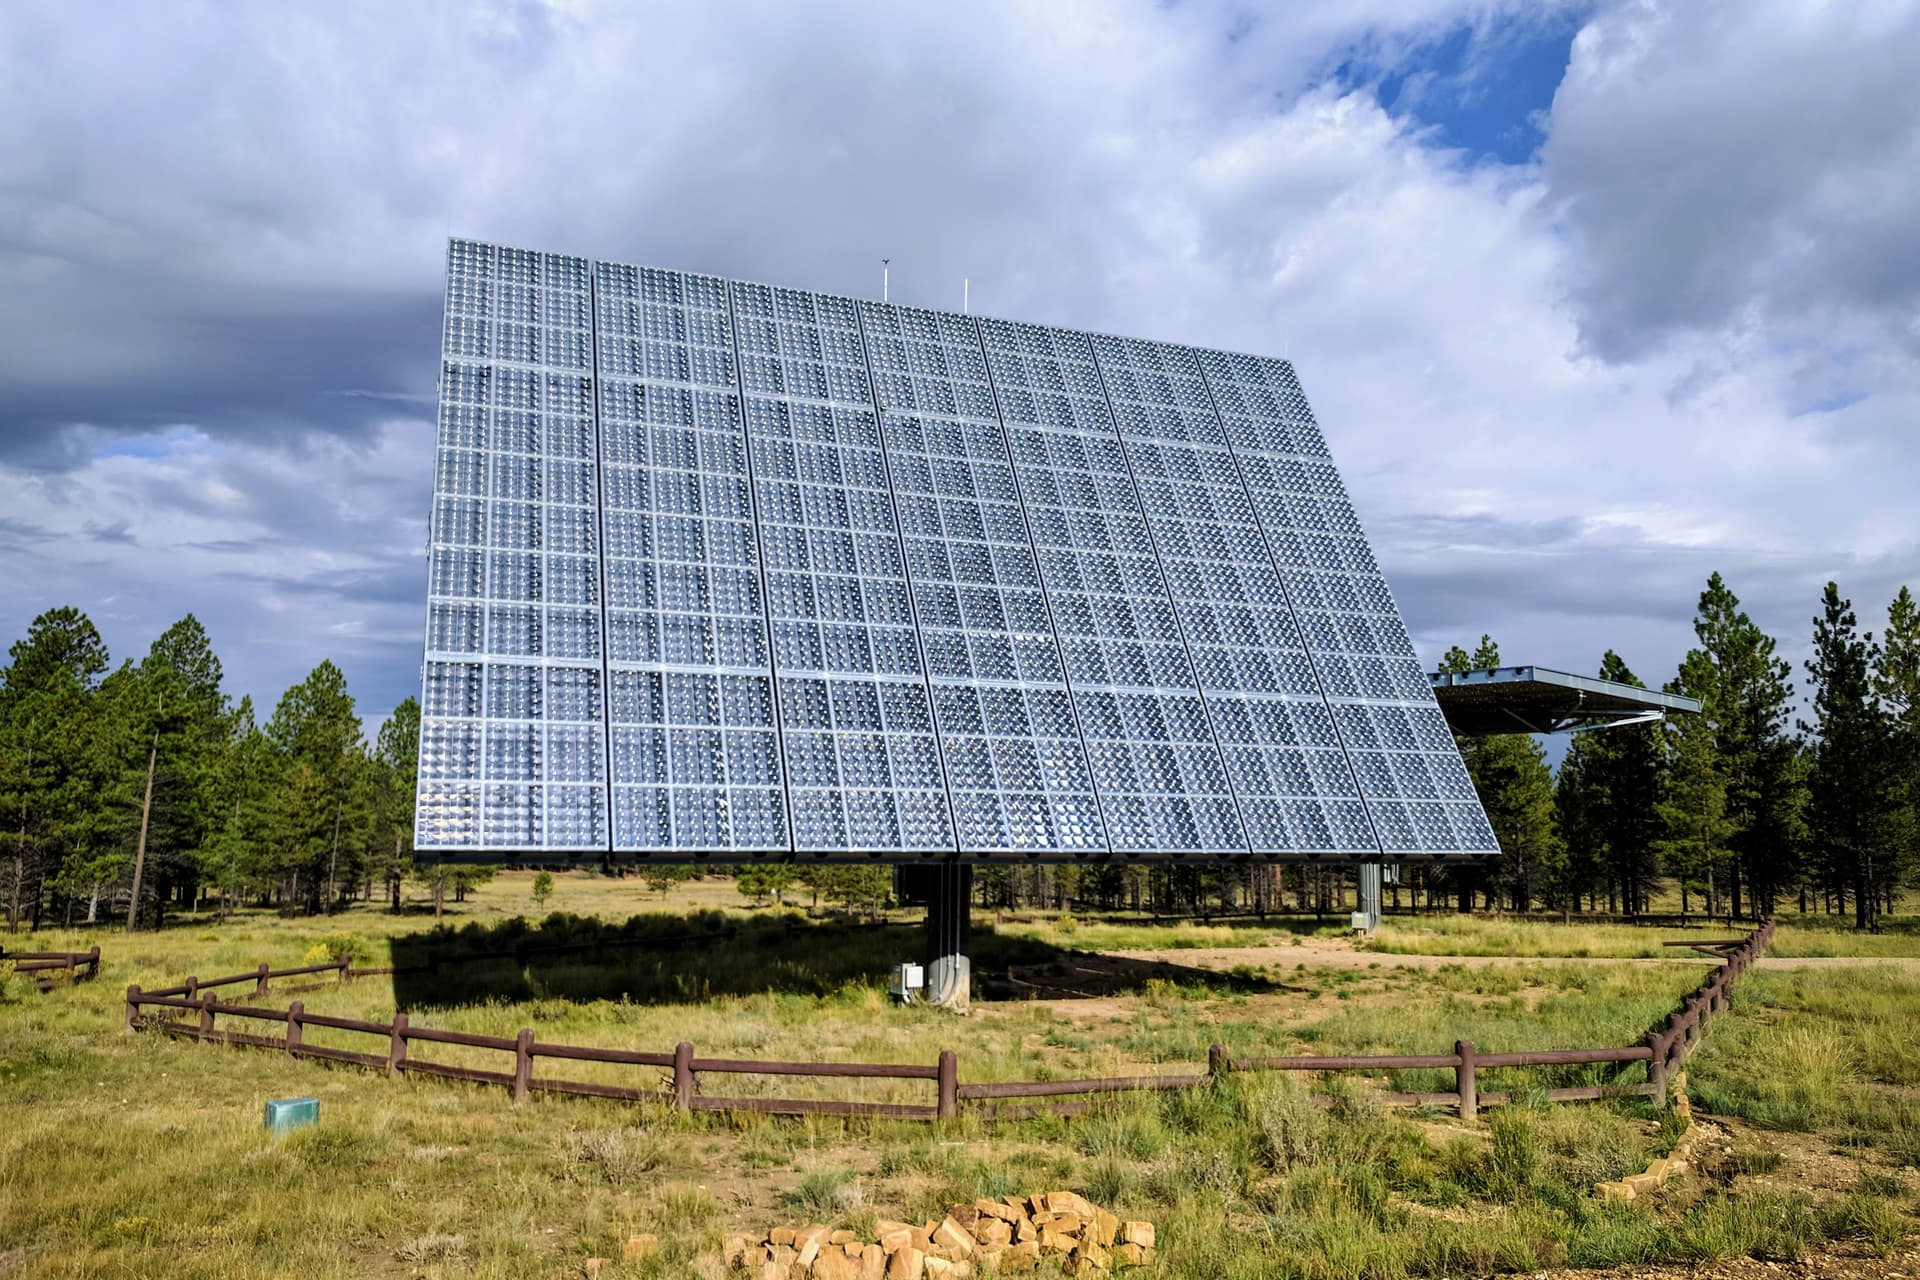 A large, free-standing solar panel in a forest clearing. Beyond it is a second panel, angled straight up as if it were a giant table.